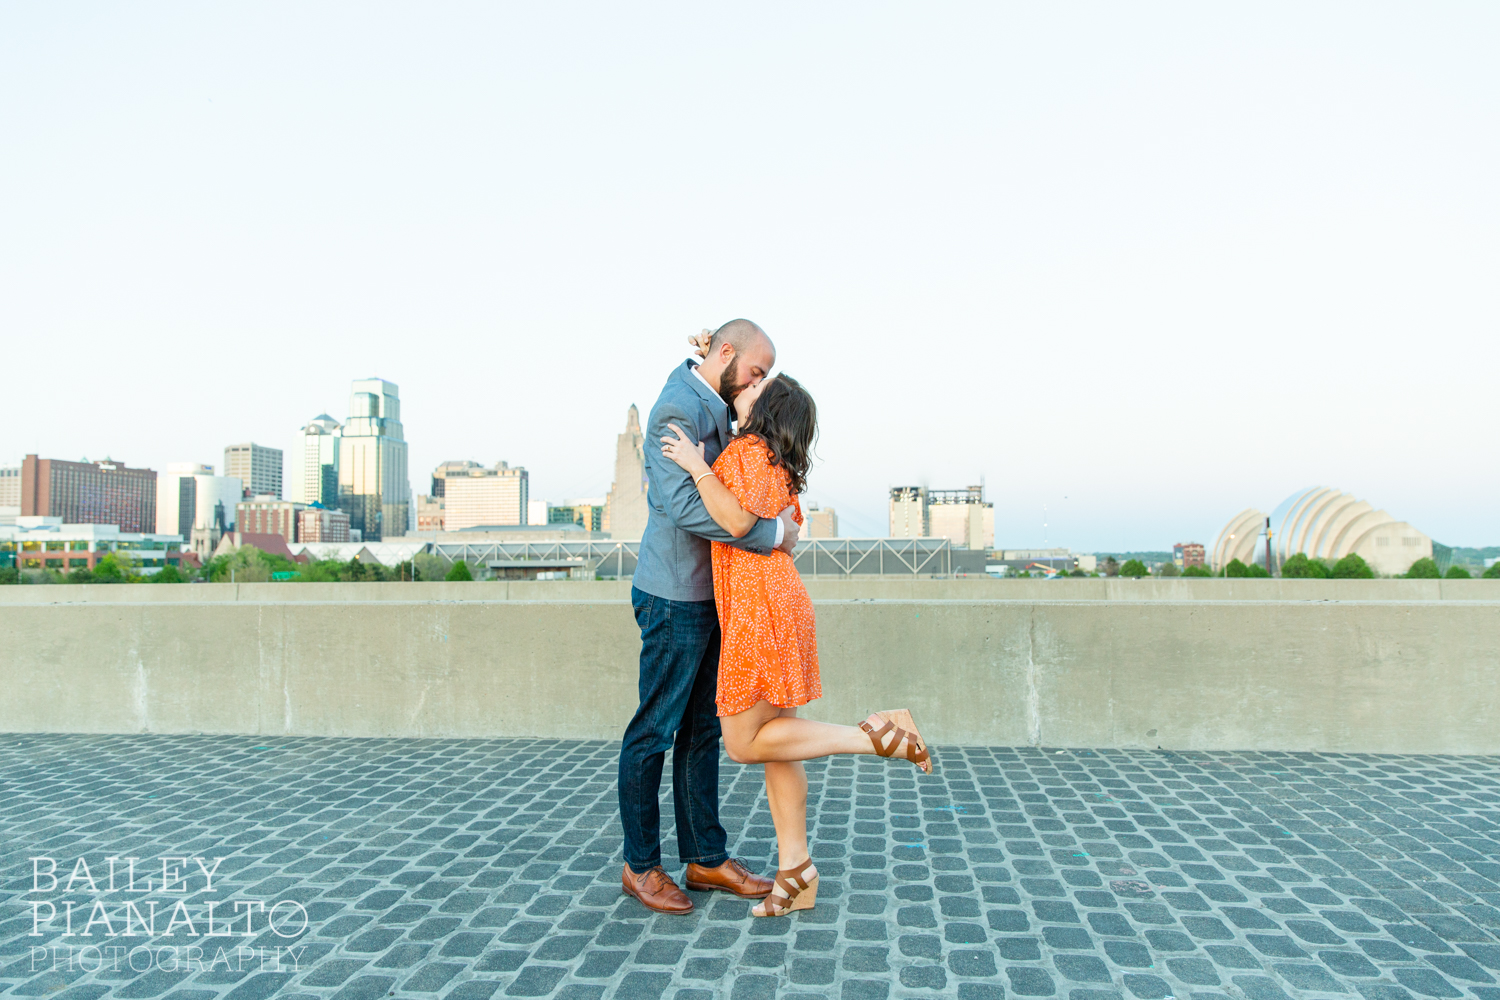 Orange, Pink & Blue Spring Skyline Sunset Engagement Session Inspiration | Kansas City, MO